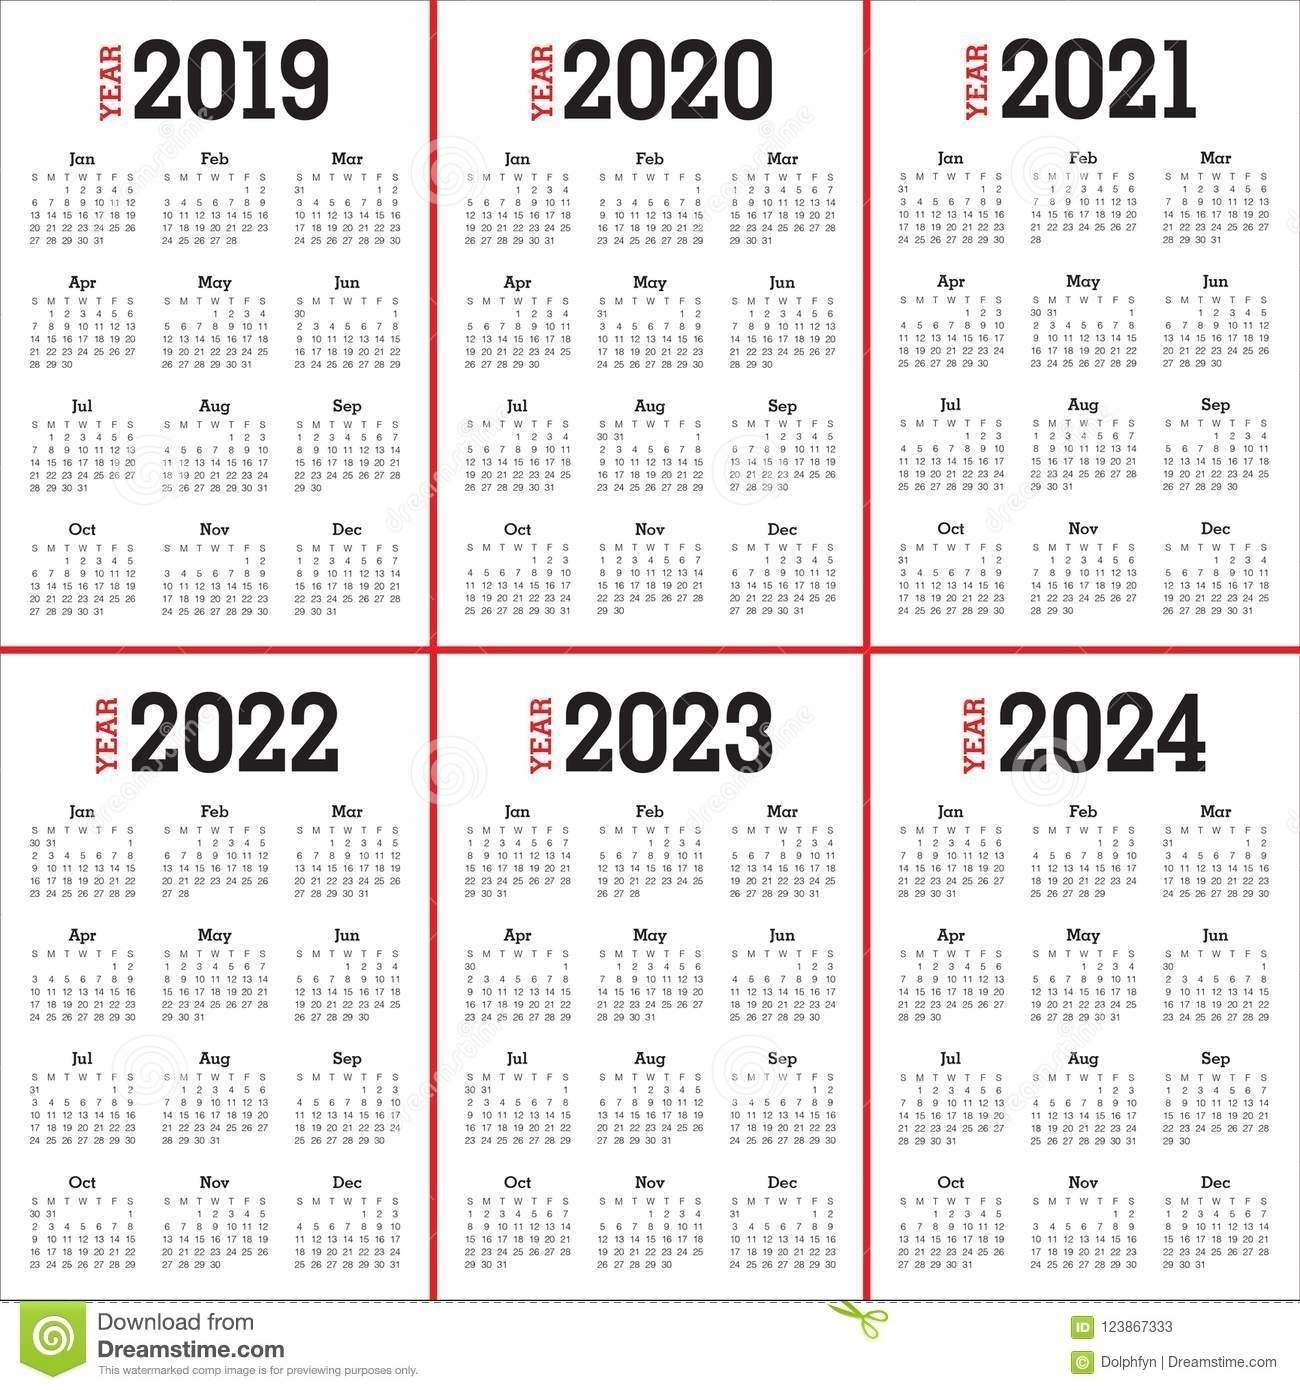 3 Year Calendar 2022 To 2024 | Month Calendar Printable-3 Year Calendar 2021 To 2023